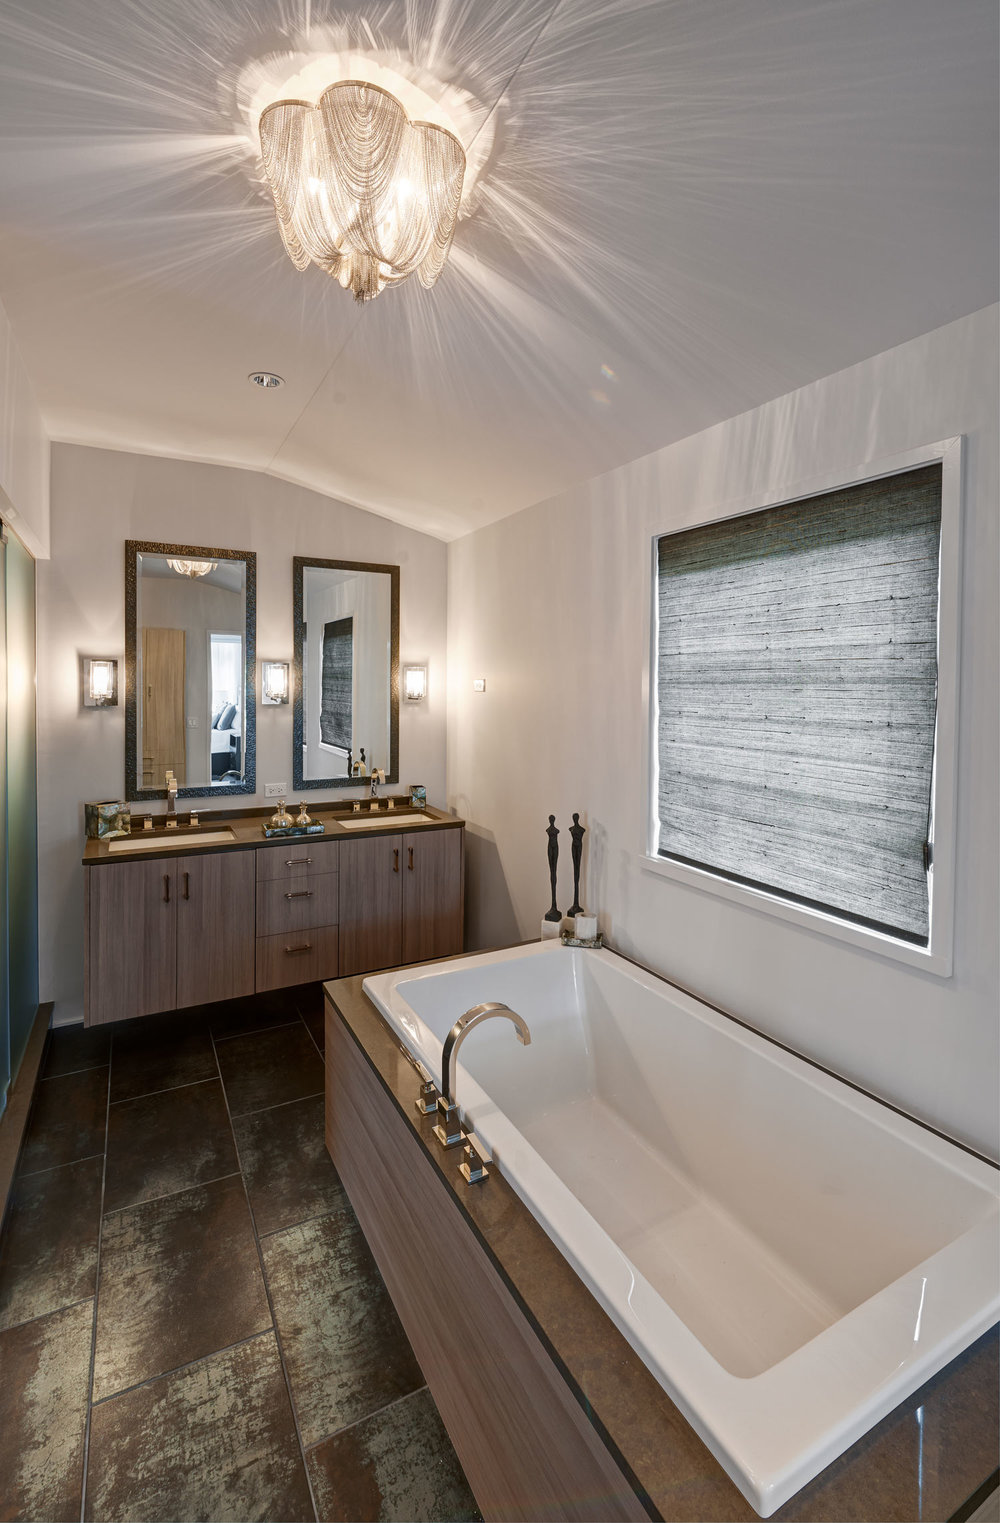 Fort Sheridan Ranch - Master Bathroom   Italian porcelain flooring in large 12 x 24 staggered pattern. Vanity and tub surrounded in a custom wood finish. Overhead chain light fixture and three sconces provide beautiful lighting.